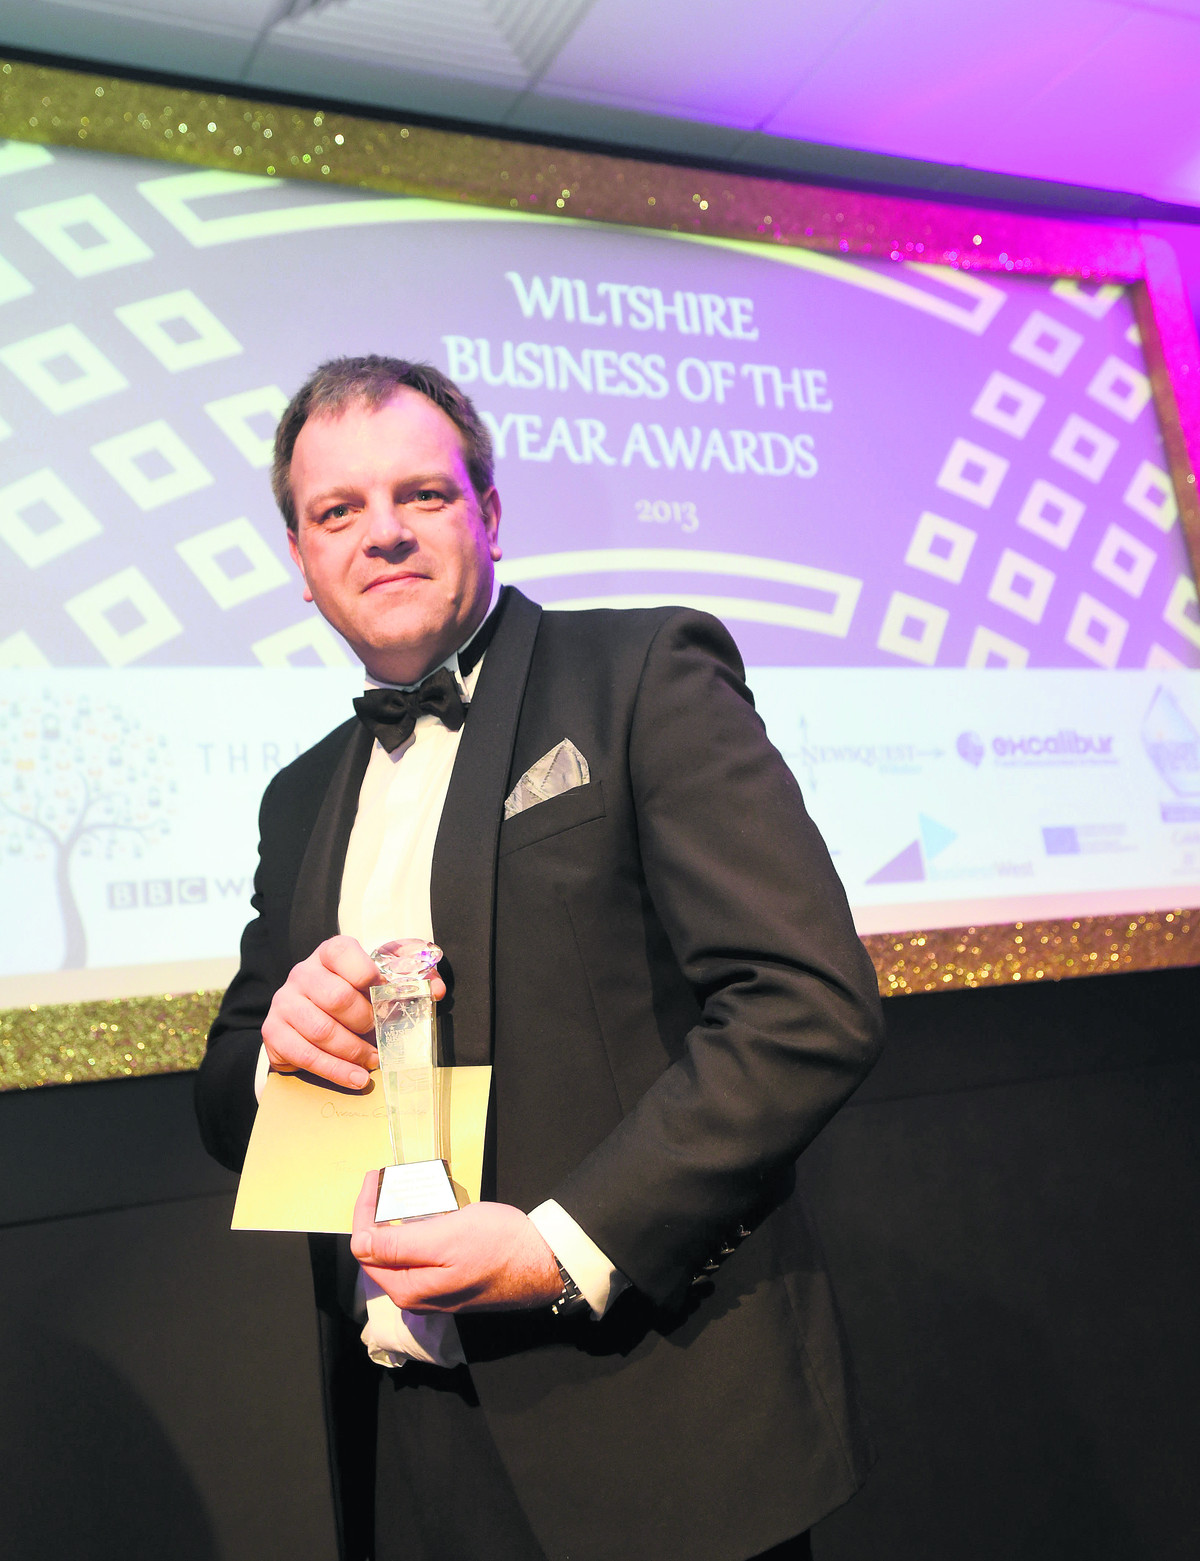 Motor dealer comes out top in Wiltshire Business of the Year Awards